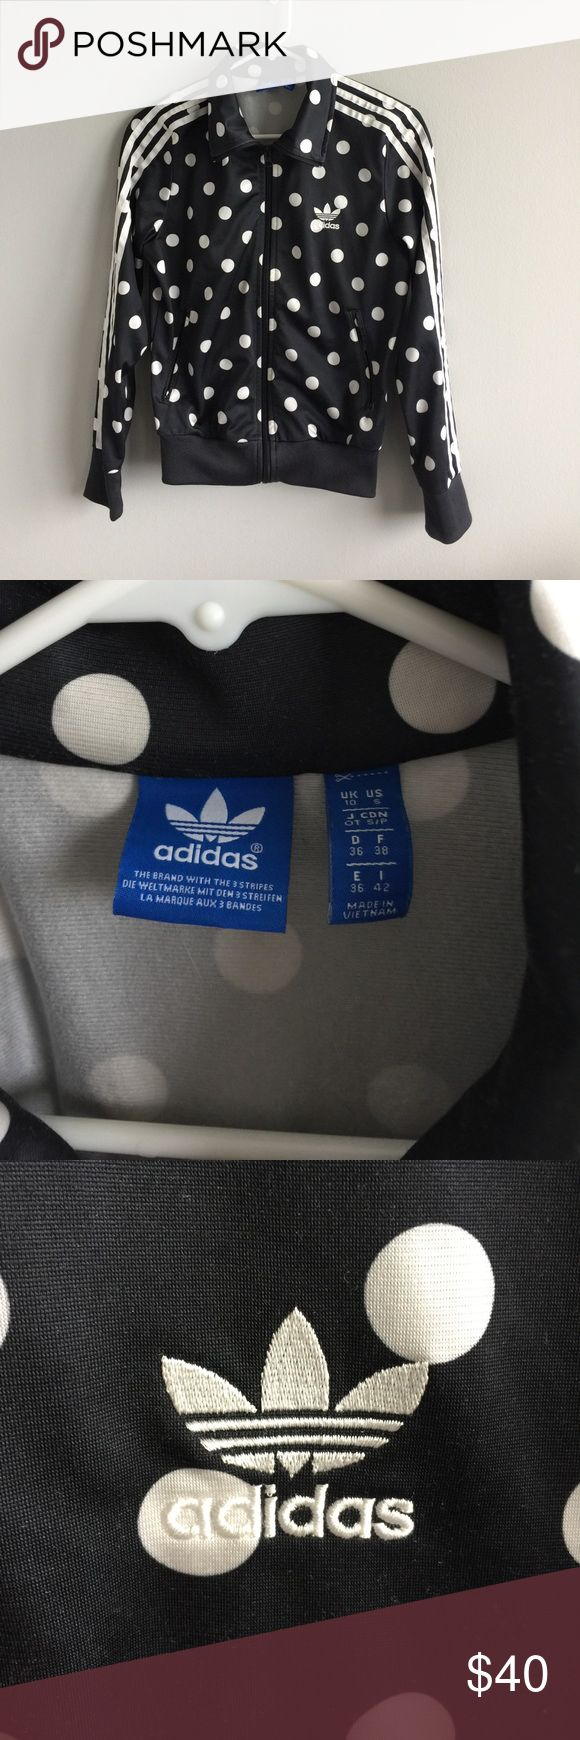 Adidas polka dot sweater Used and in good condition. Adidas polka dot zip up sweater adidas Sweaters